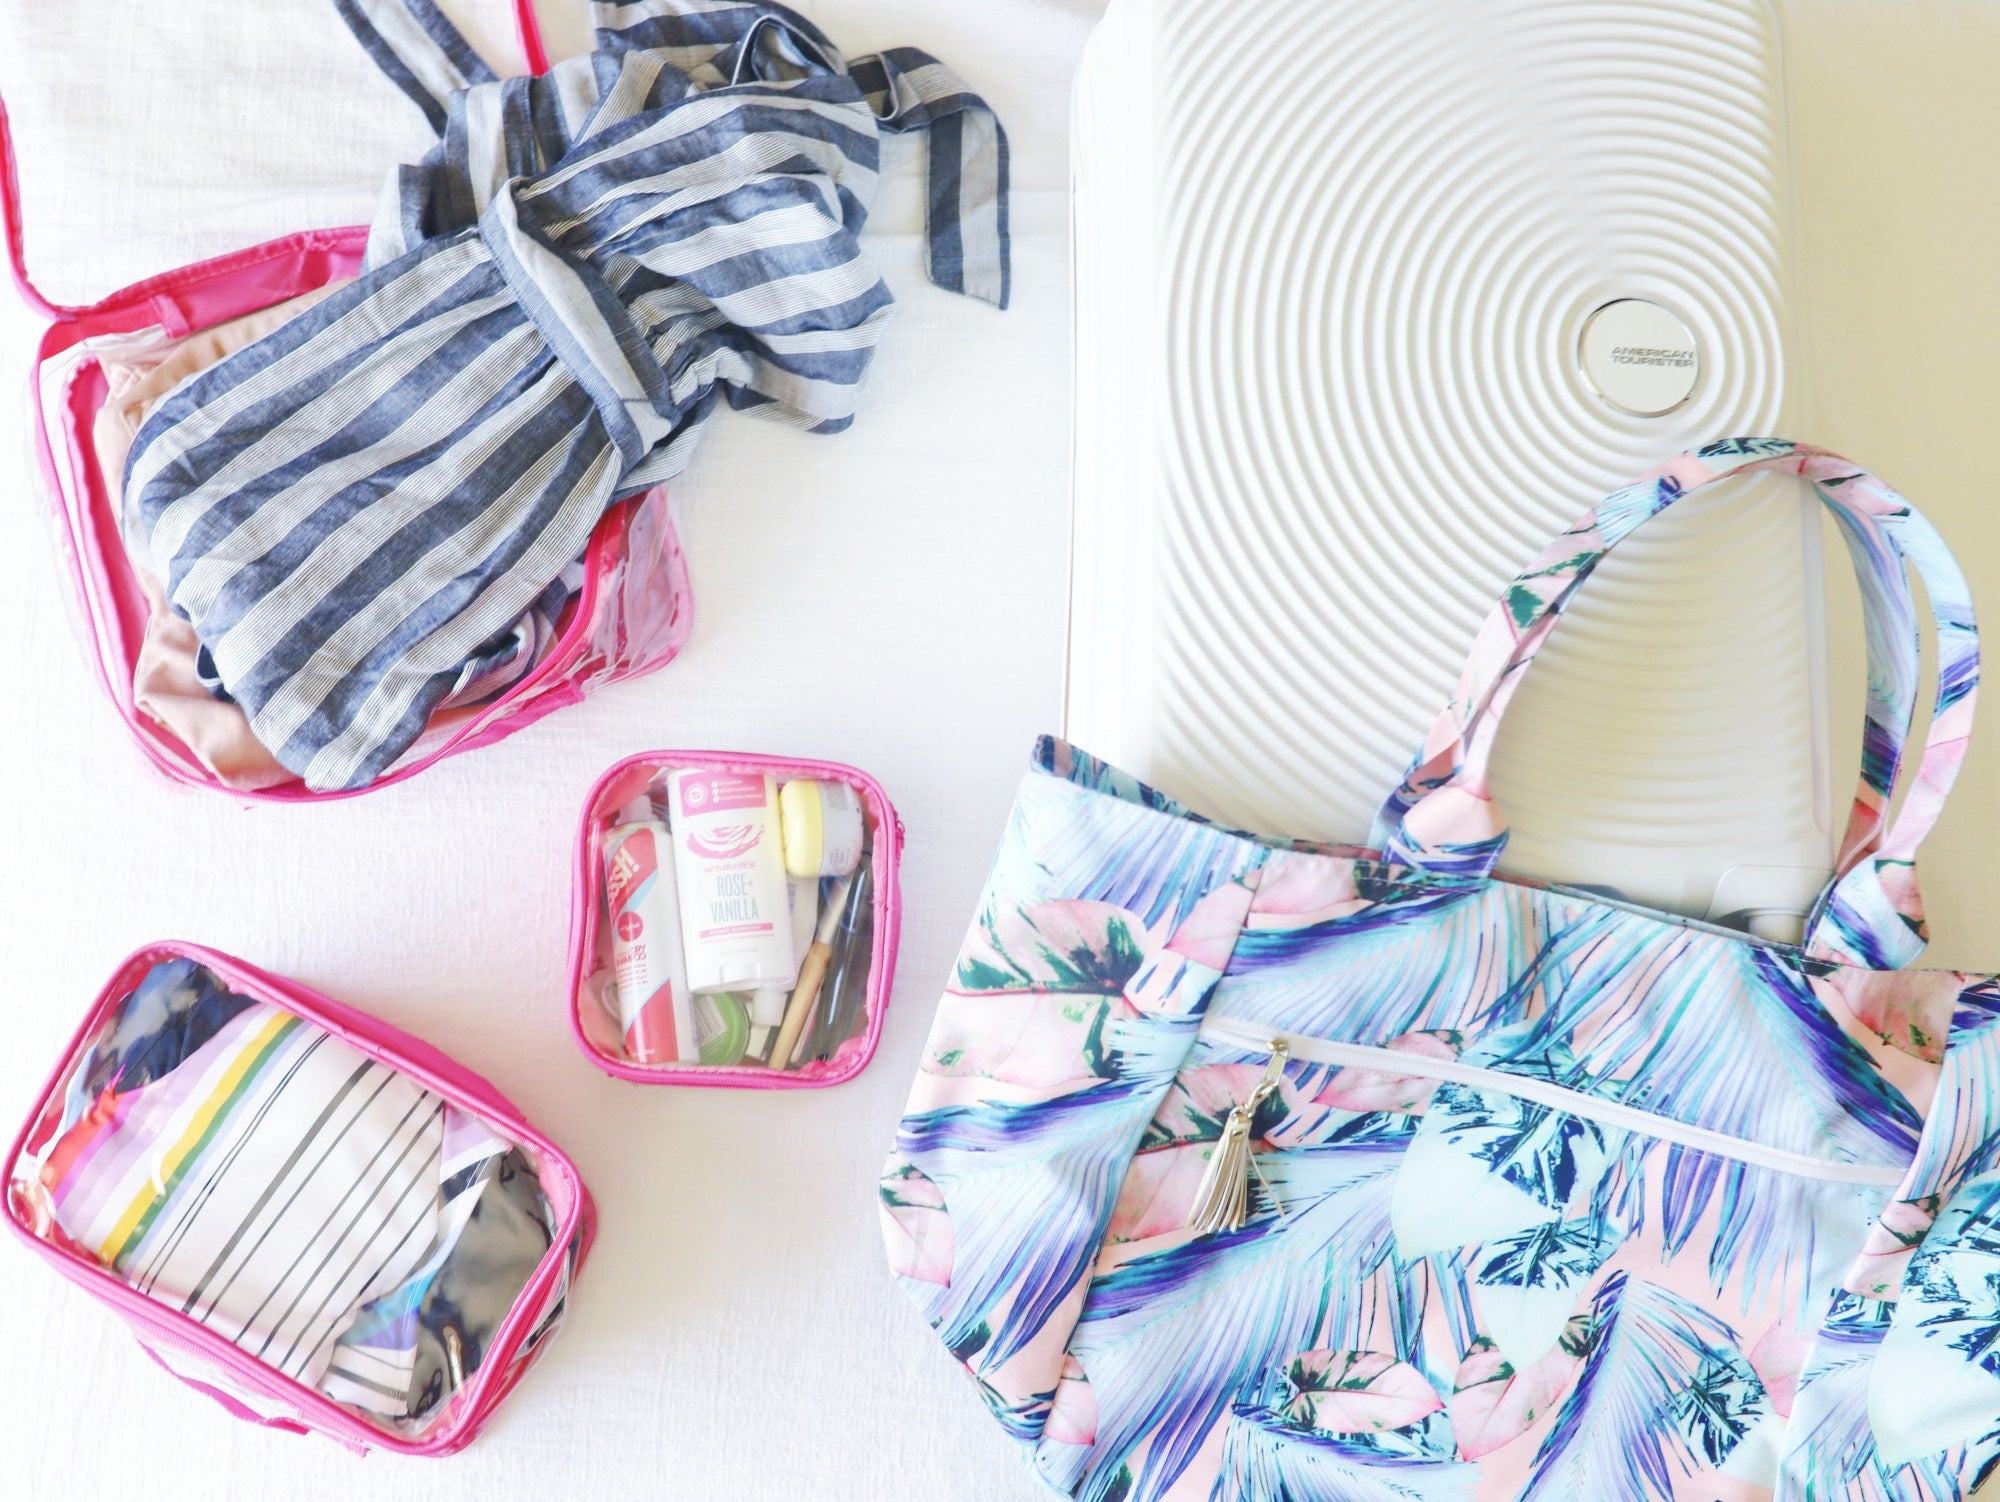 Organized summer tote bag with clear packing cubes